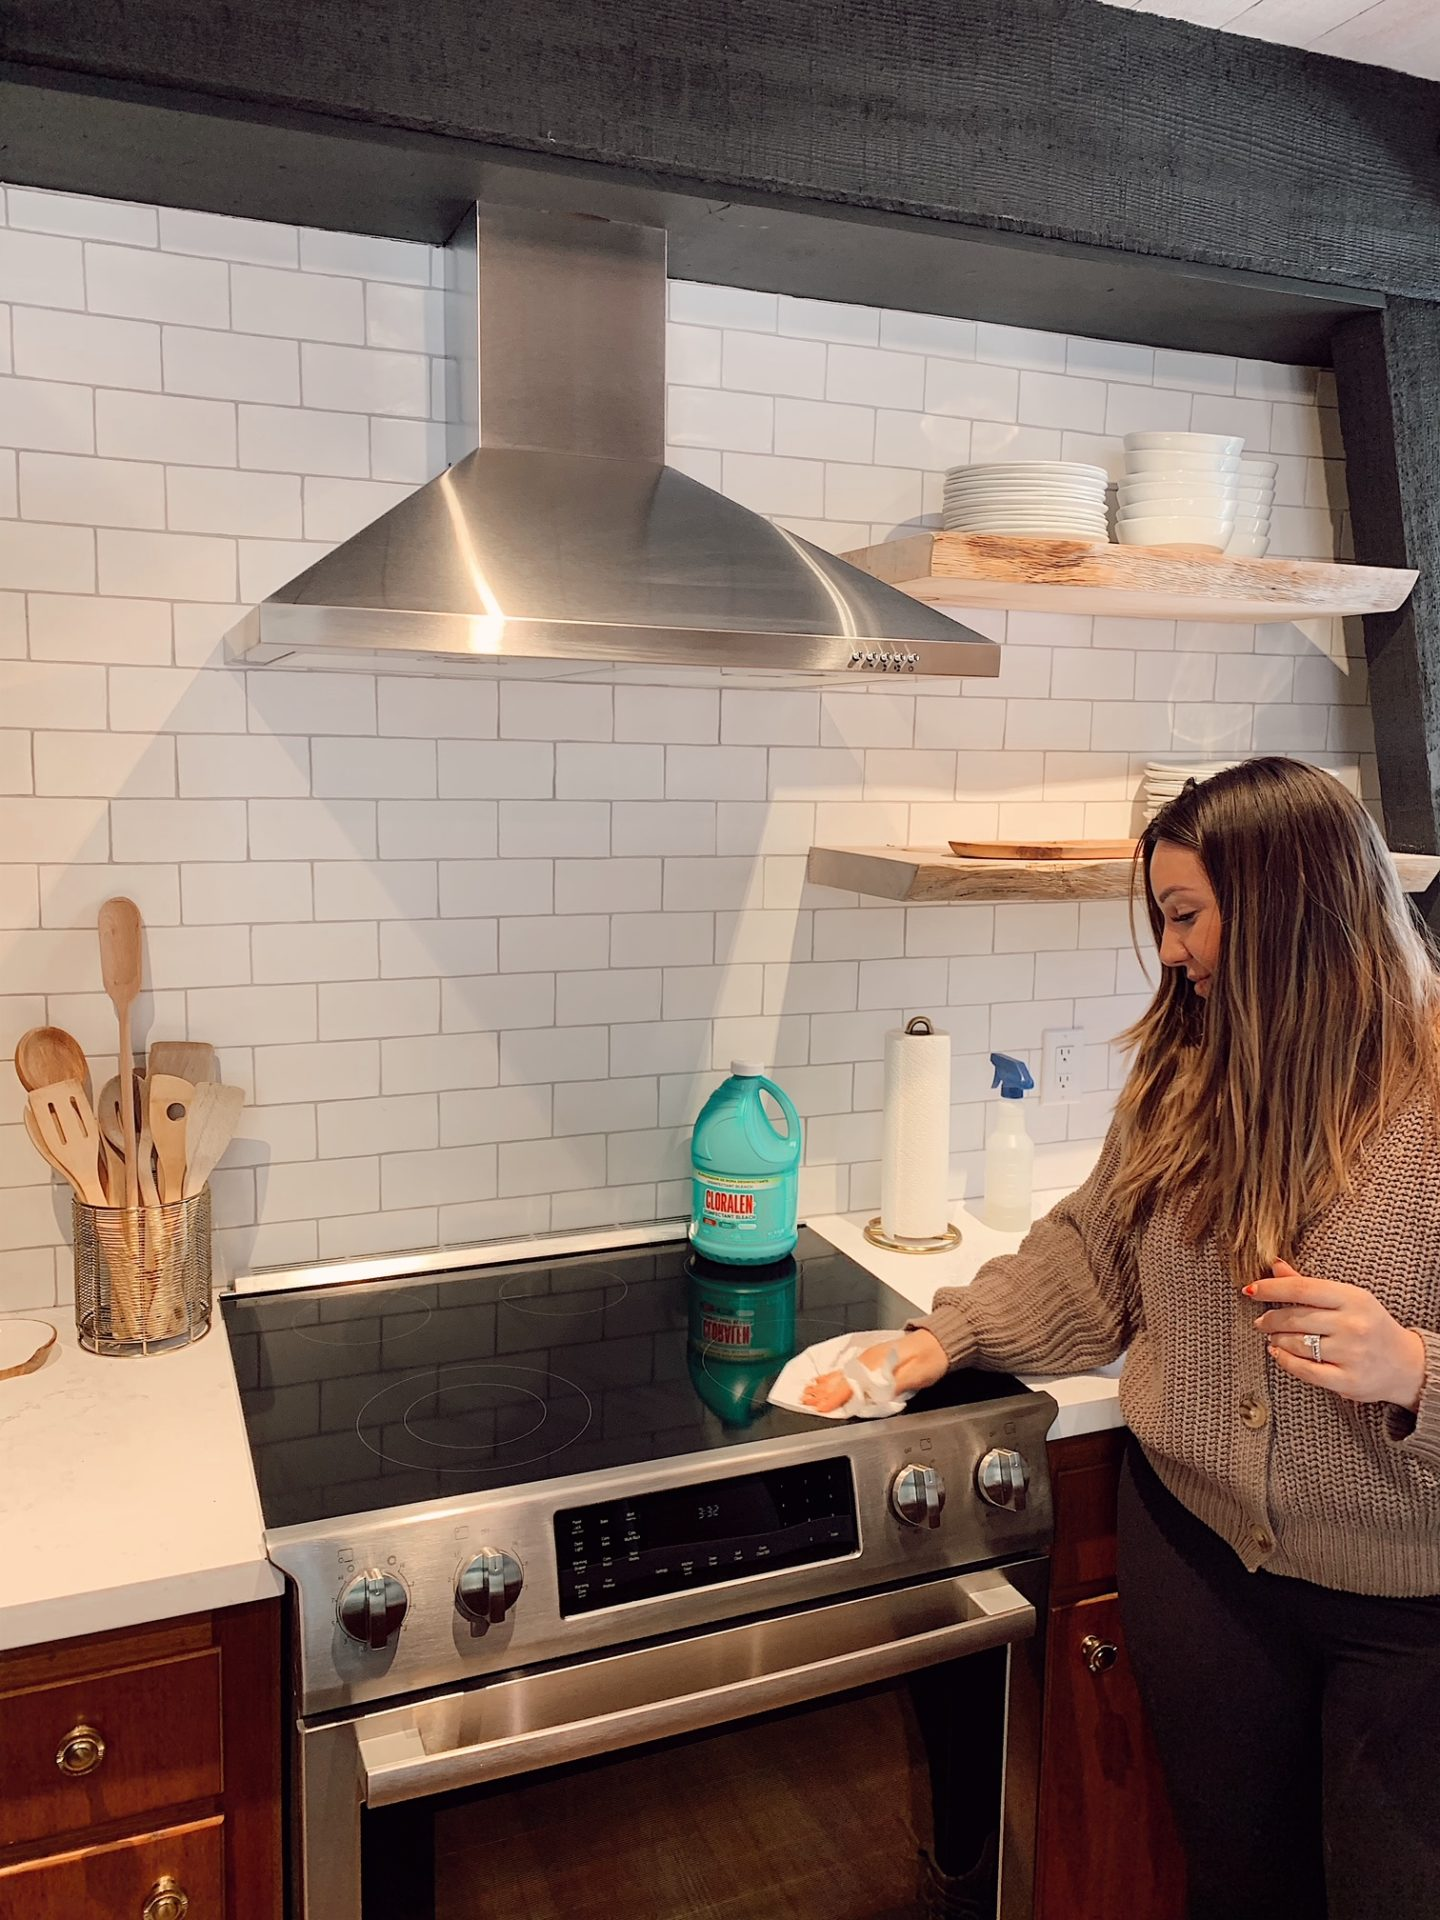 Cleaning with CLORALEN |Spring Cleaning Tips by popular San Francisco lifestyle blog, Just Add Glam: image of a woman holding a plastic spray bottle and wiping down her stove top.